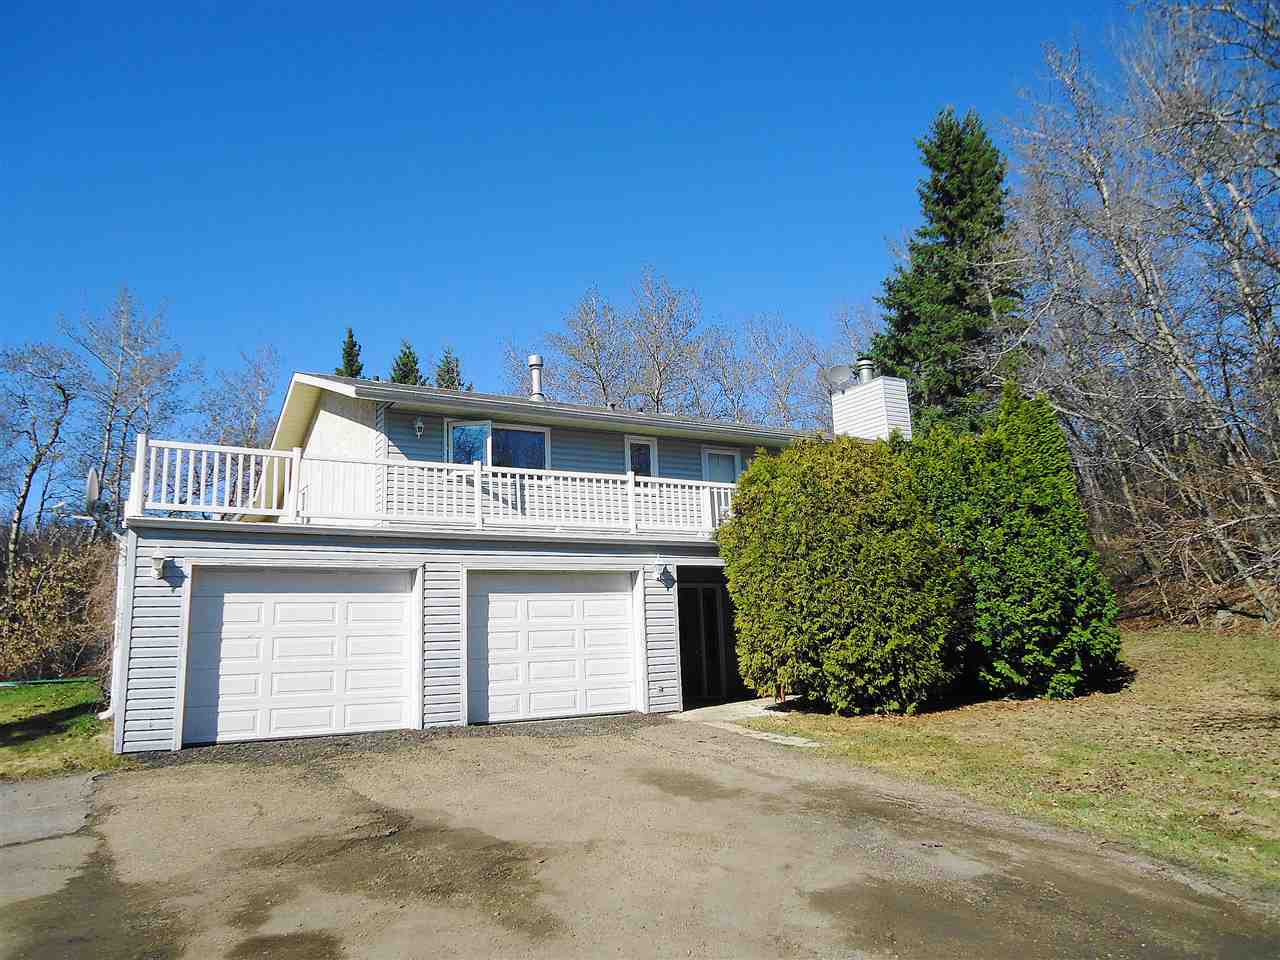 Beautifully treed & private lot on quiet cul-de-sac in desirable Hunters Hills only 13 minutes east of Sherwood Pk. Hillside bung with over 3000 sq ft developed. Huge balcony off LR wraps around north & east side of home. 3+1 bds & den. 3 baths. Massive living room with rustic woodburning fireplace with split log mantle. Formal DR with garden doors to deck. Eat-in country kitchen with solid wood cabinets. Massive MB with 4 pc ensuite. Basement has cozy FR, huge RR with built-in aquarium, spacious games area, bath, 4th bd & den. New engineered hardwood in 2014. New roof in May 2019. Vinyl windows in 2011. Eavestroughs replaced in 02. Premium sewage treatment plant in 2012. Home based business or mechanic's dream! Oversized dbl att garage + 52x30 SHOP built in 09 with 2- 8' overhead doors, heated office & storage + attached cold storage . 220V, radiant gas heat & numerous compressed air drops throughout. Ample quality shelving & cabinets included.  Aerated koi pond. Fish & winter tanks neg.